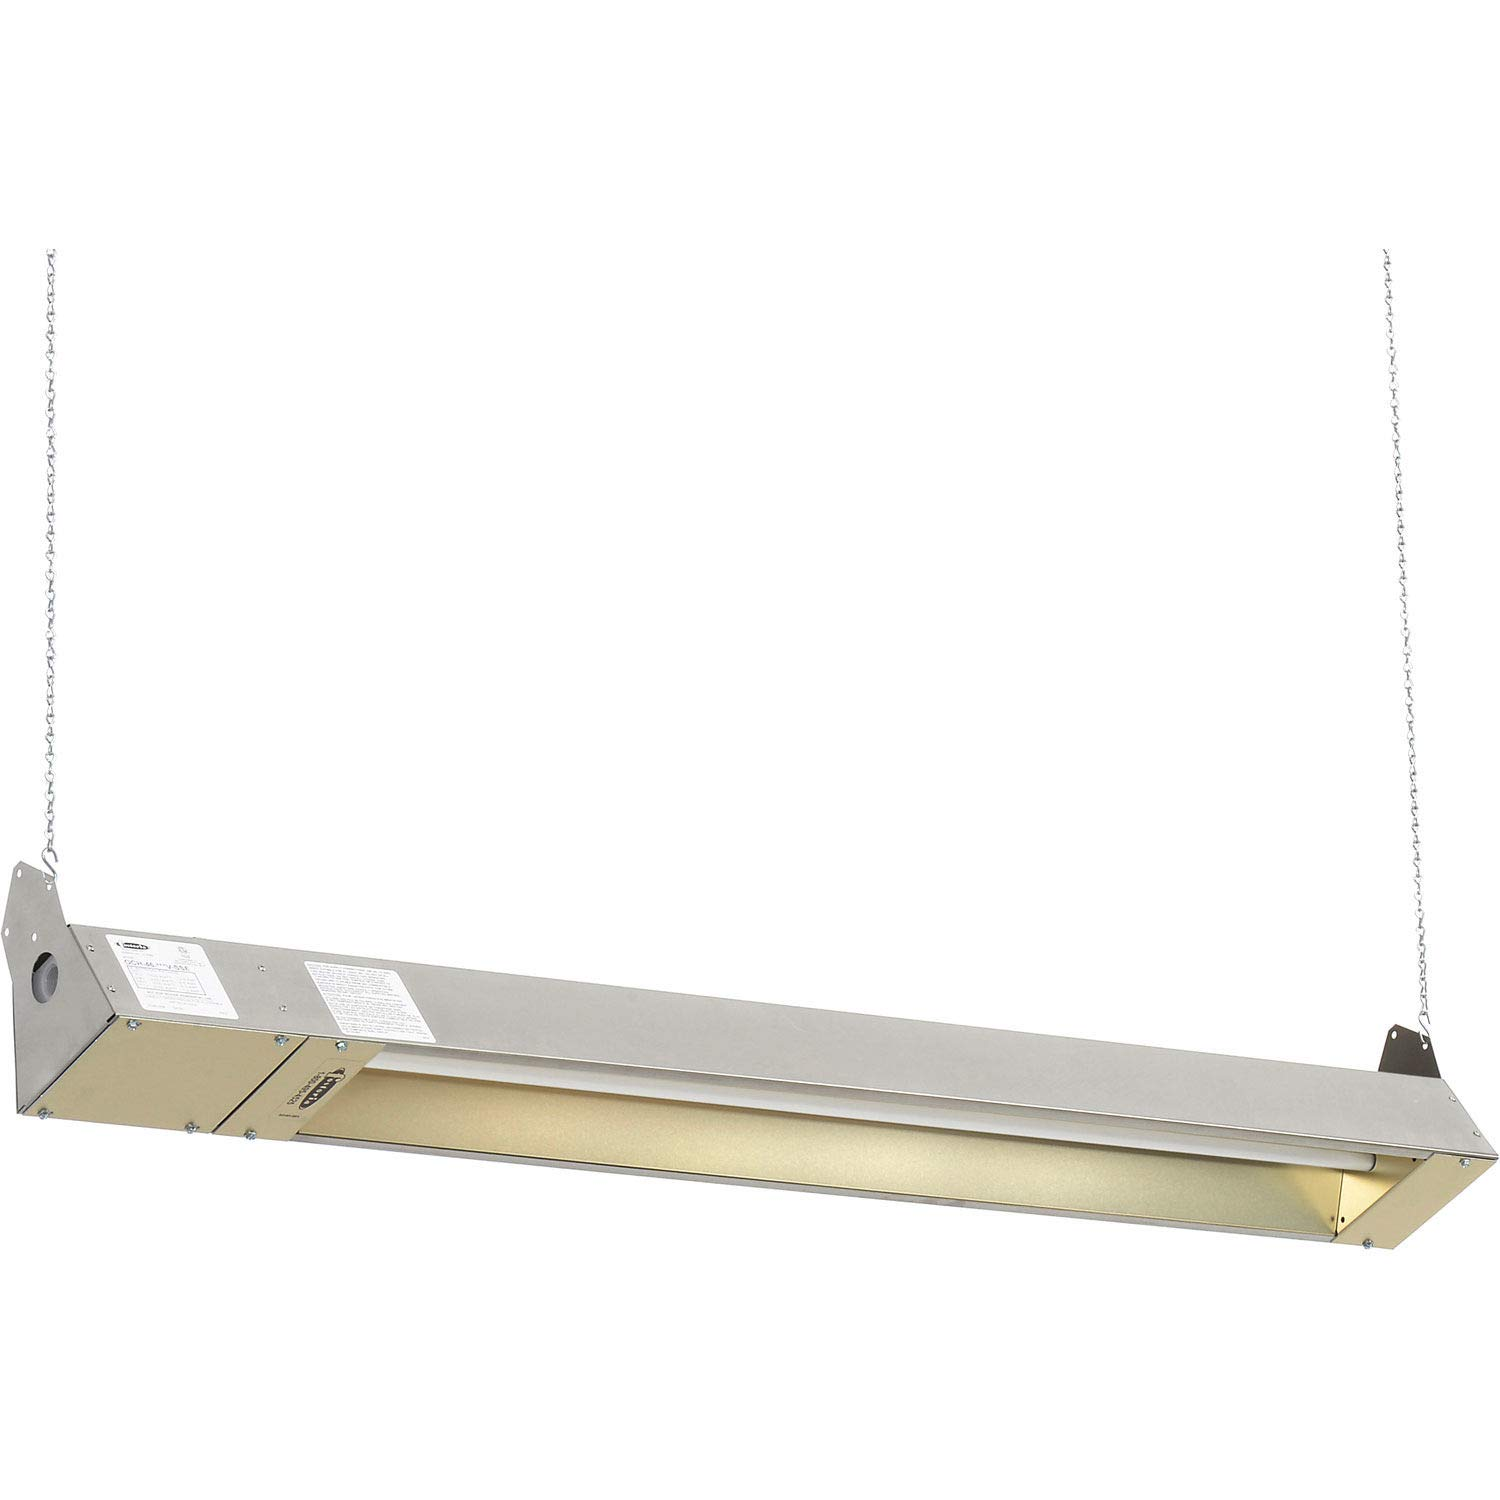 TPI Indoor Outdoor Quartz Electric Infrared Heater 120V 1500W Stainless Steel